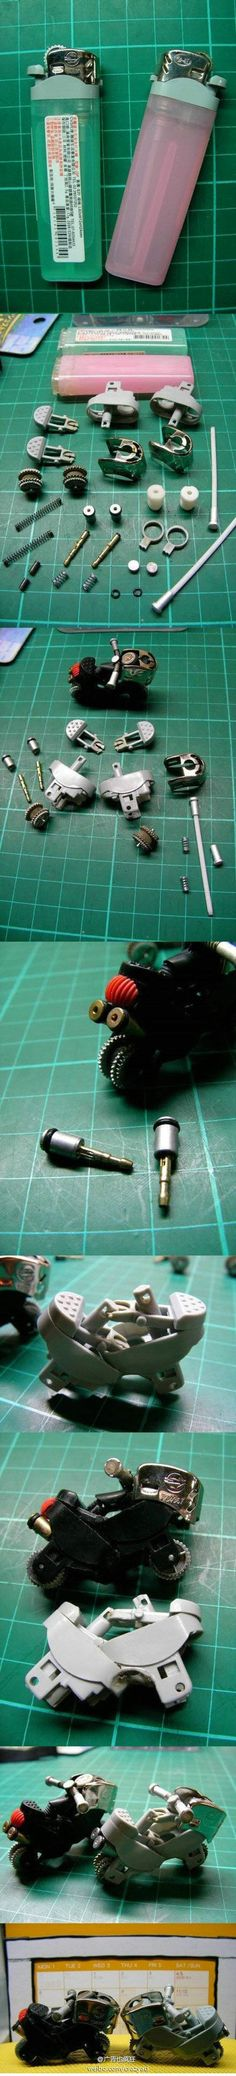 DIY Cool Lighter Motorcycle | FabDIY